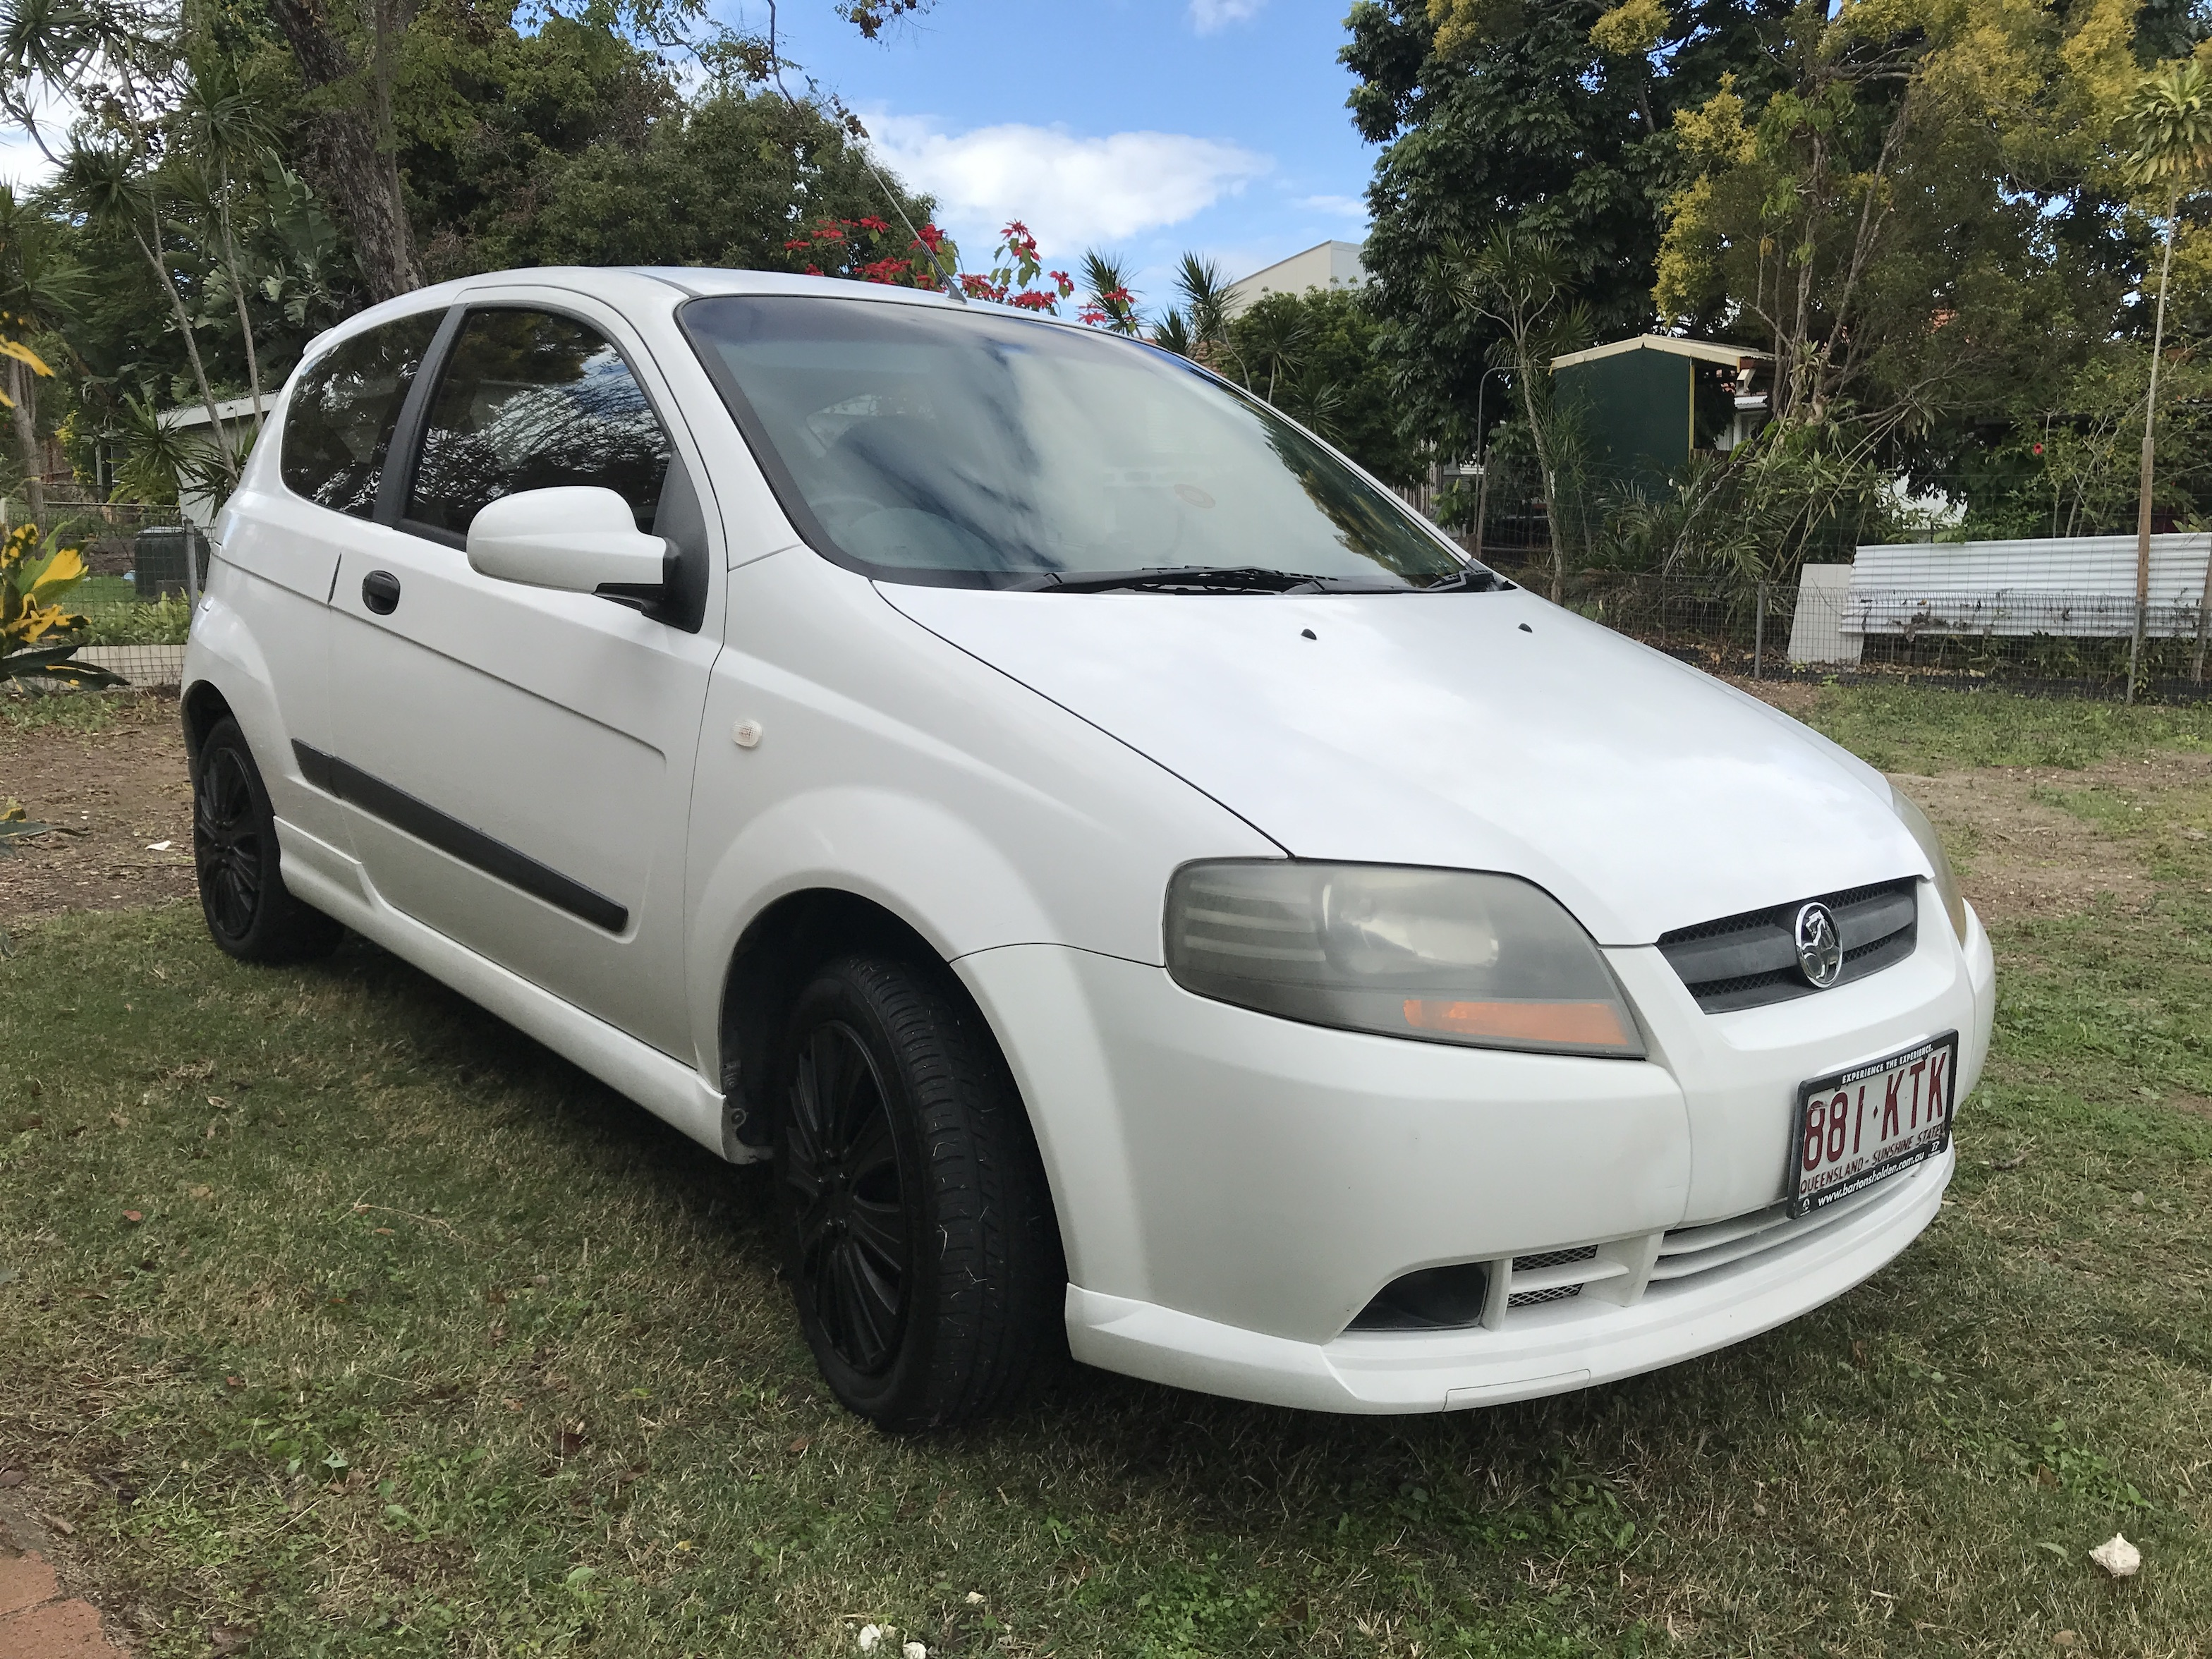 Picture of Karen's 2007 Holden Barina